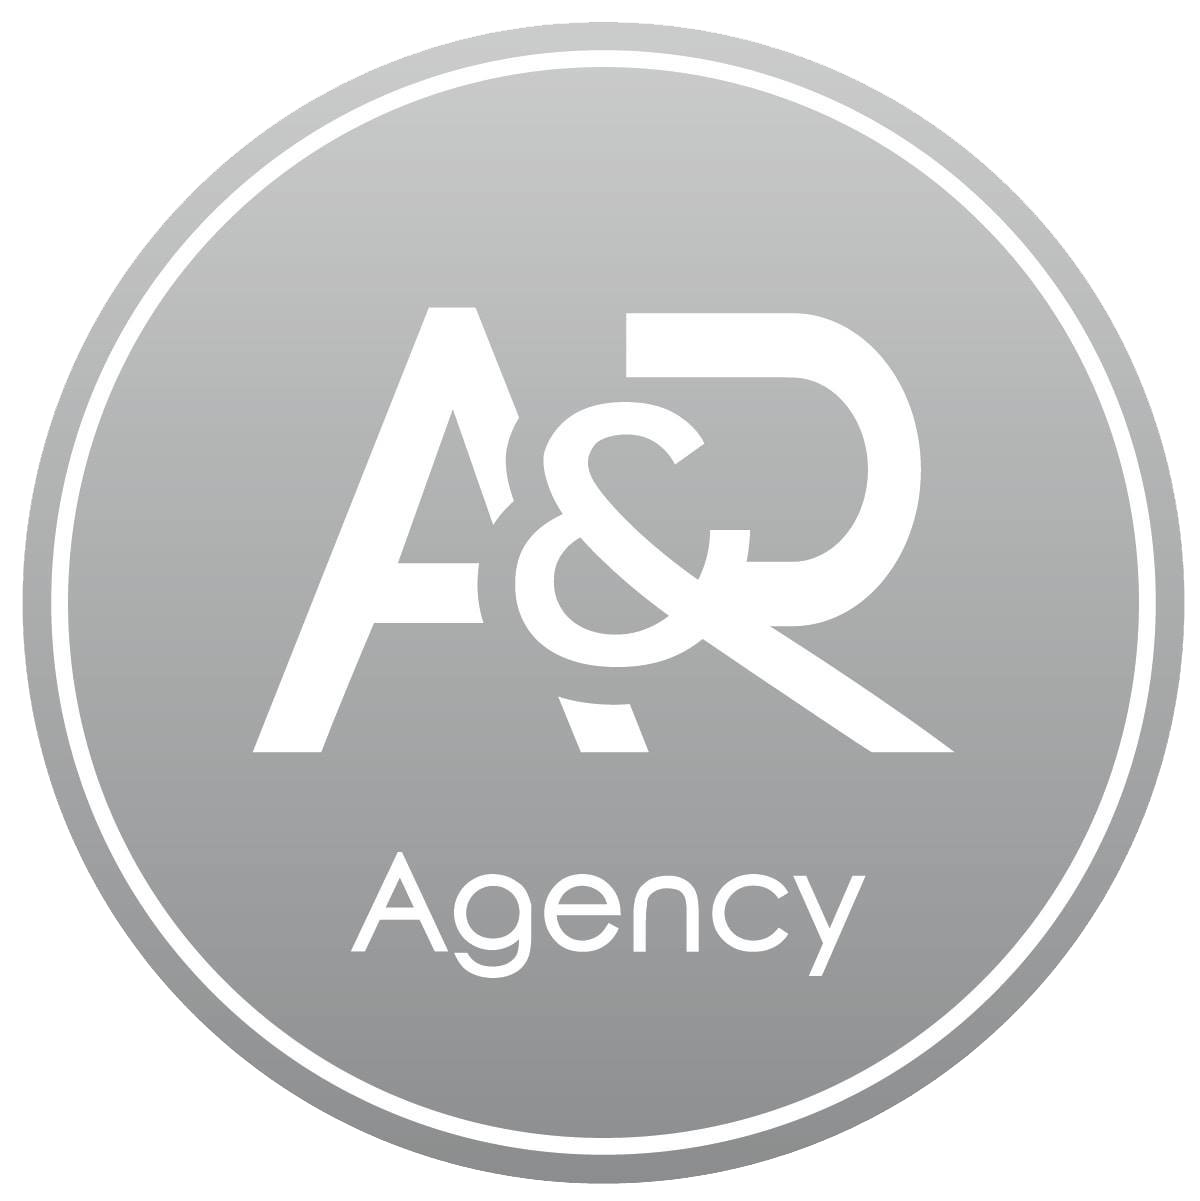 A&R Agency Logo.png